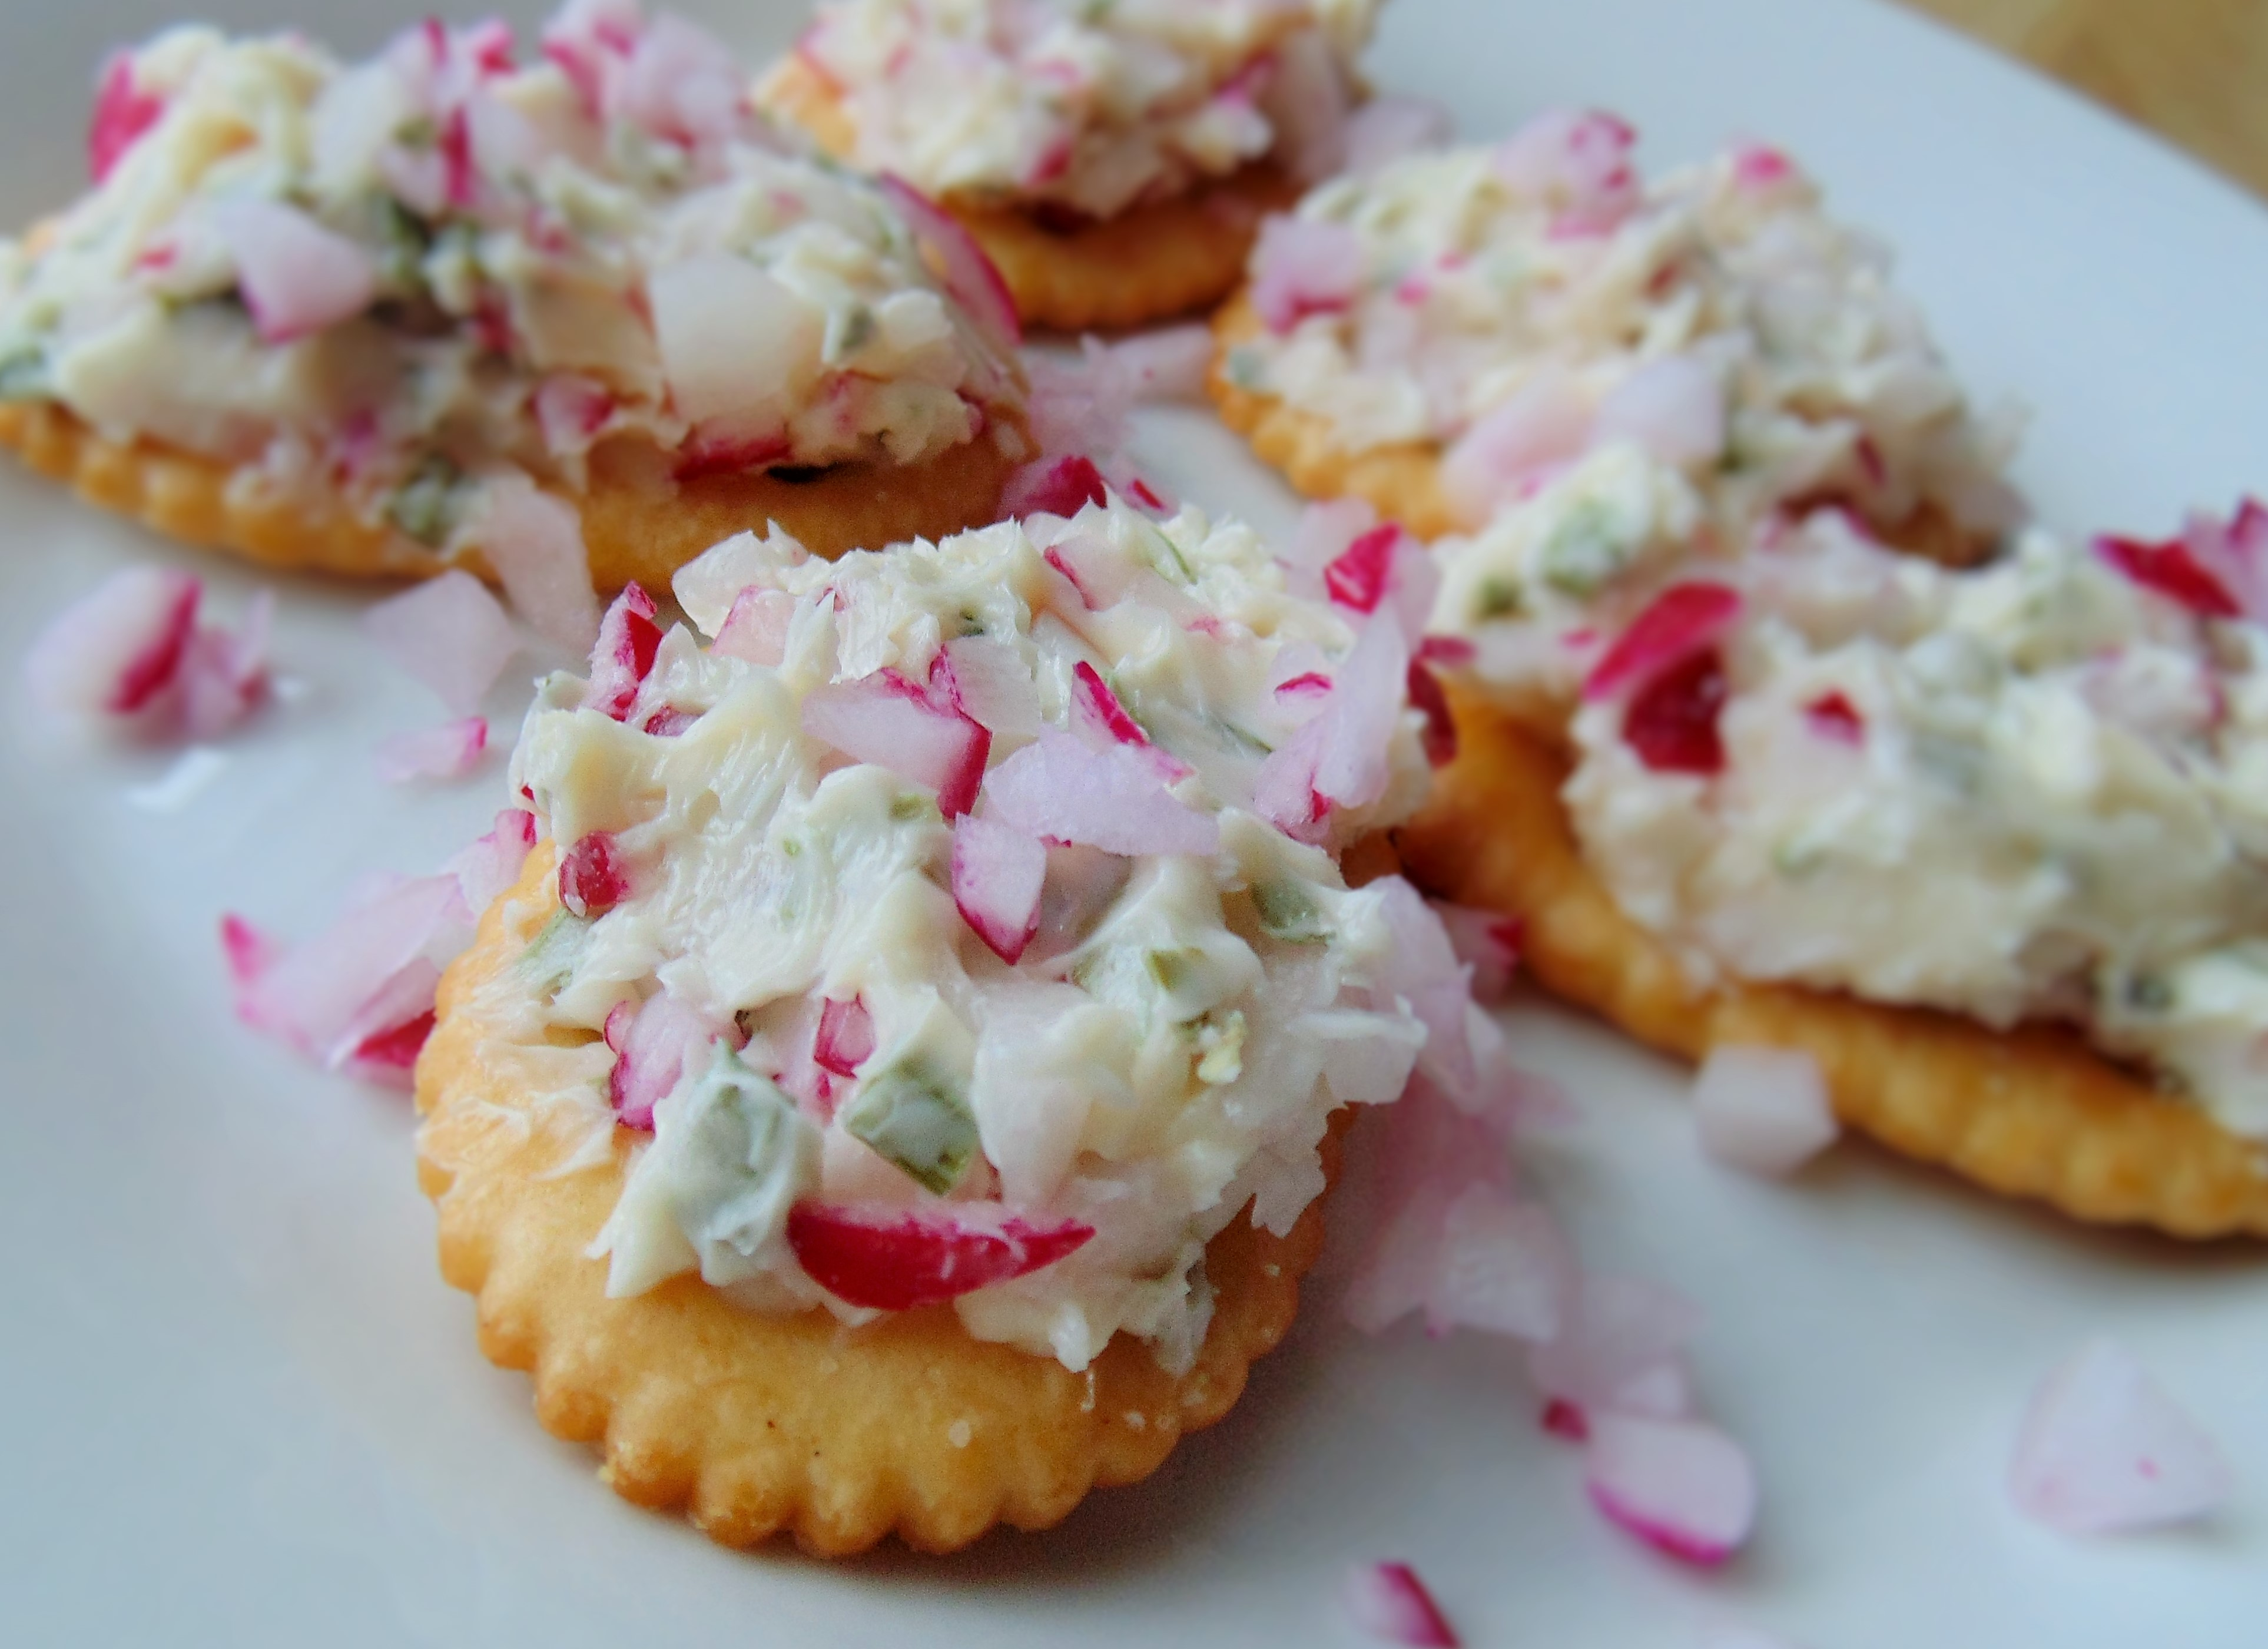 Radish and Butter Spread